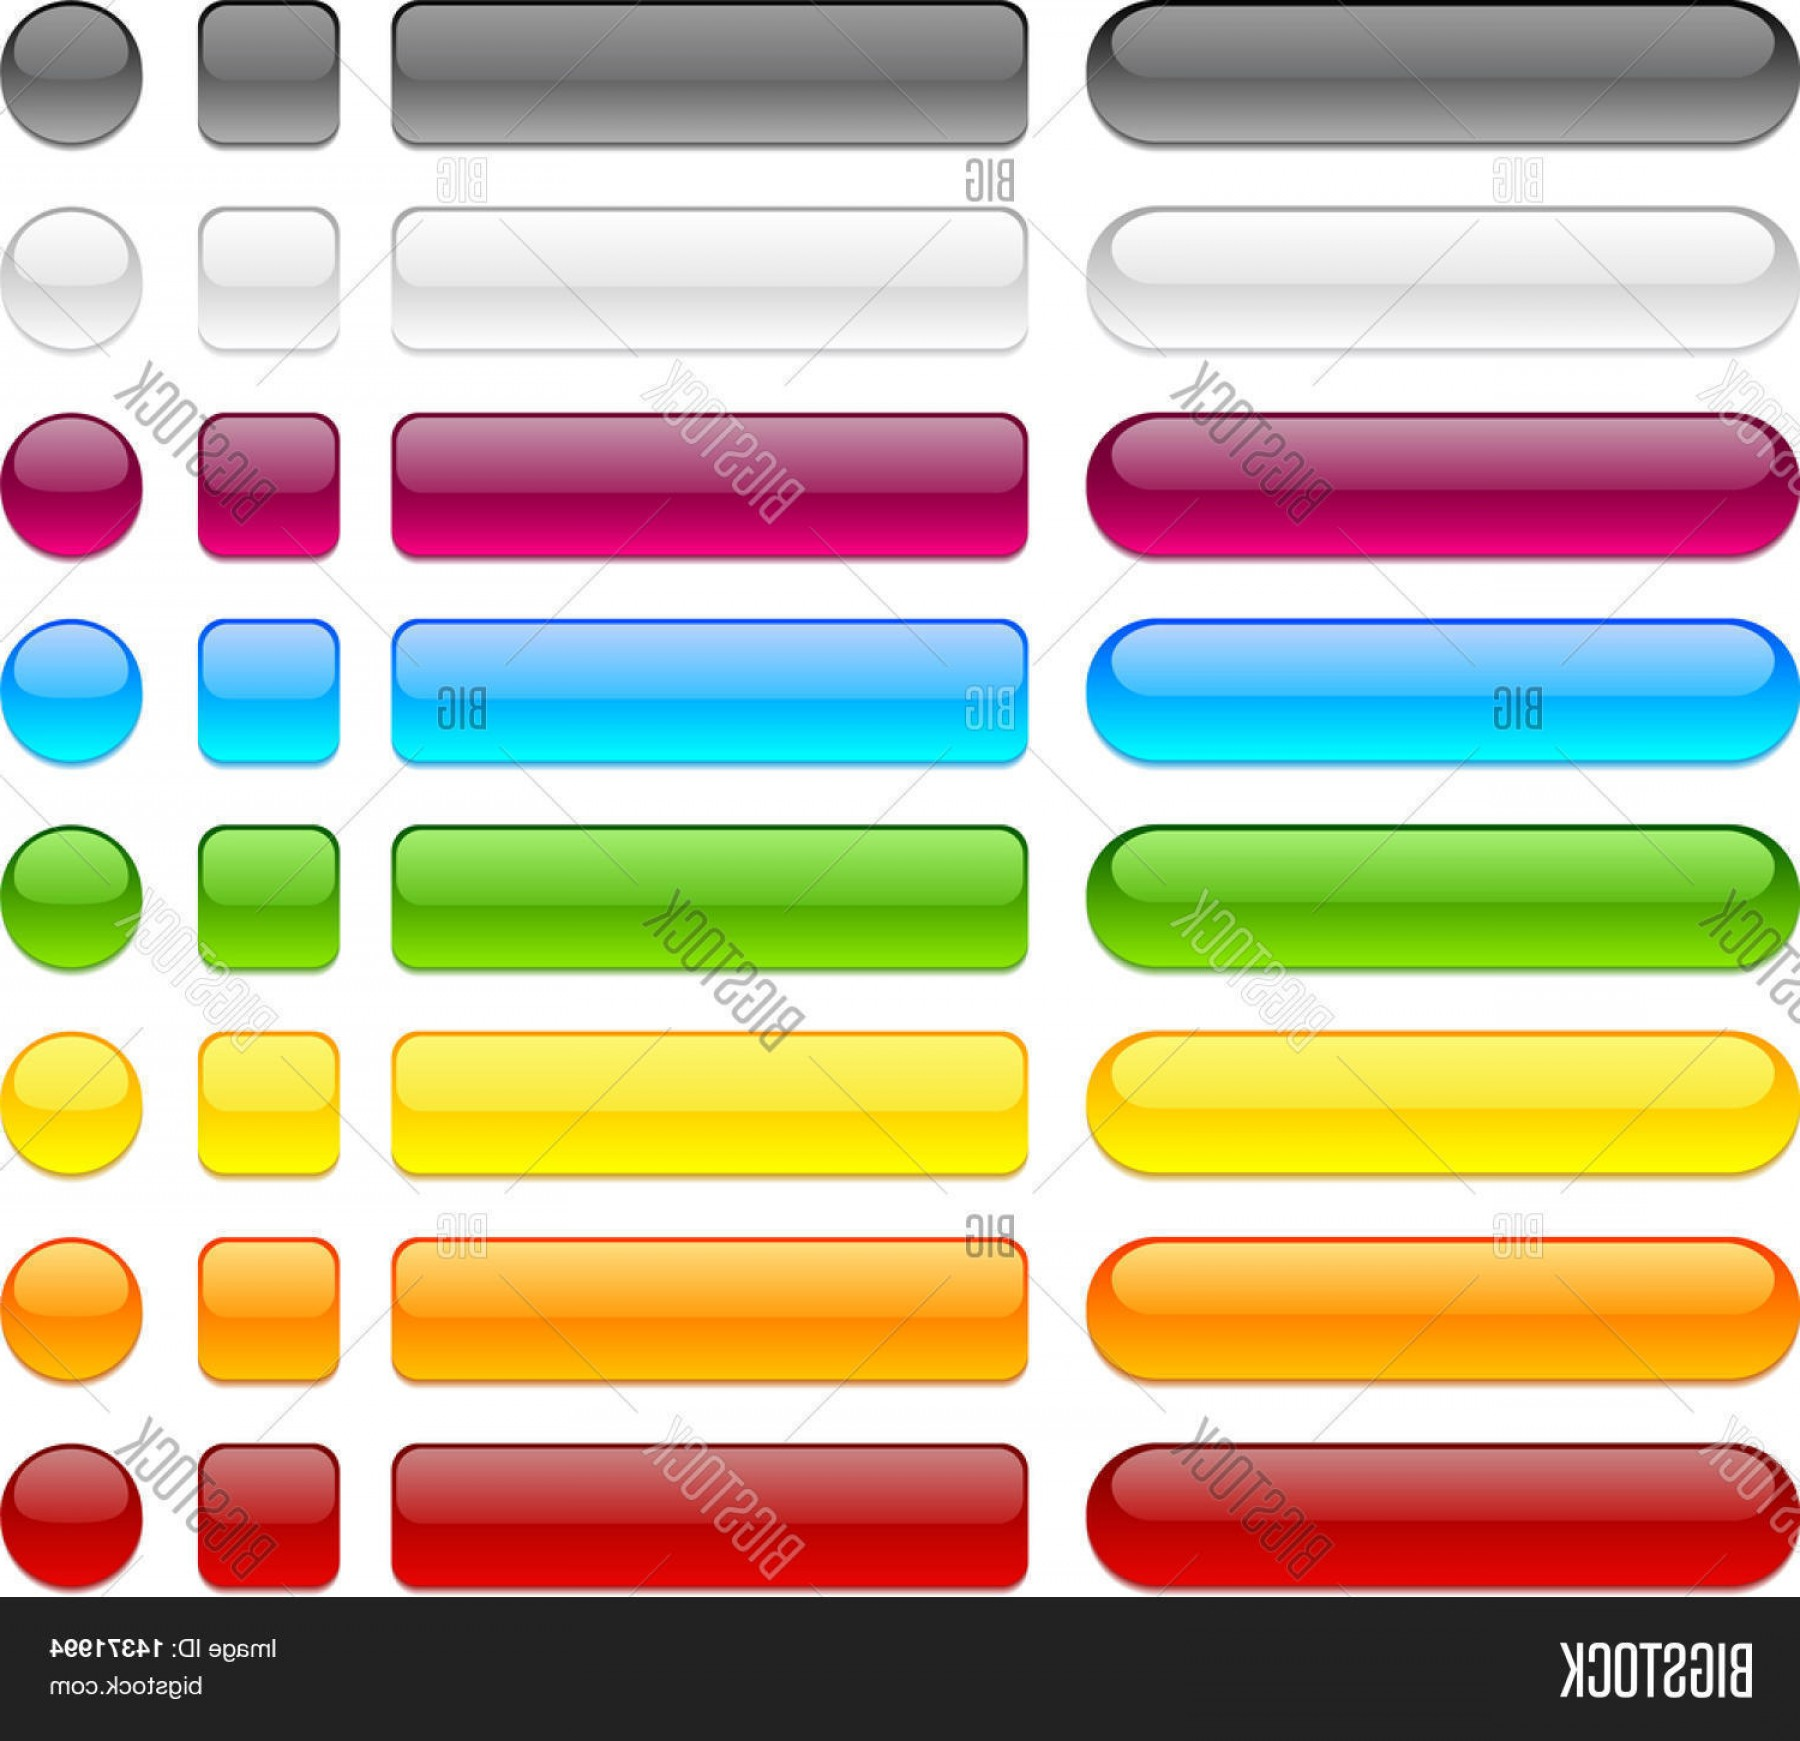 Web Buttons Vector: Stock Vector Blank Web Buttons Vector Illustration